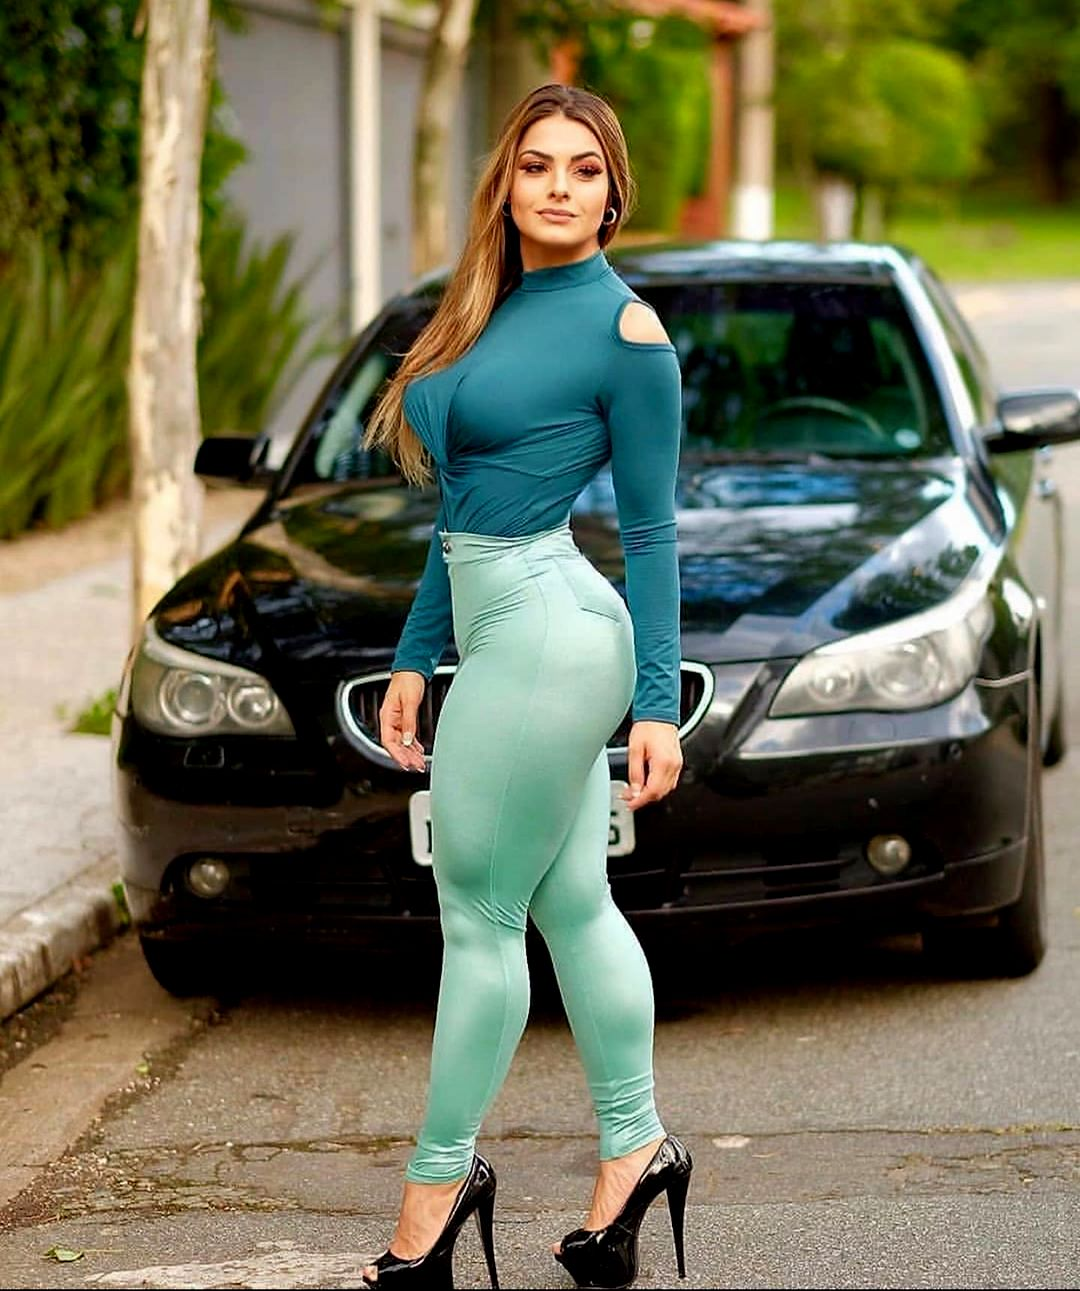 Stylish Fitness Give Pose in front of Car